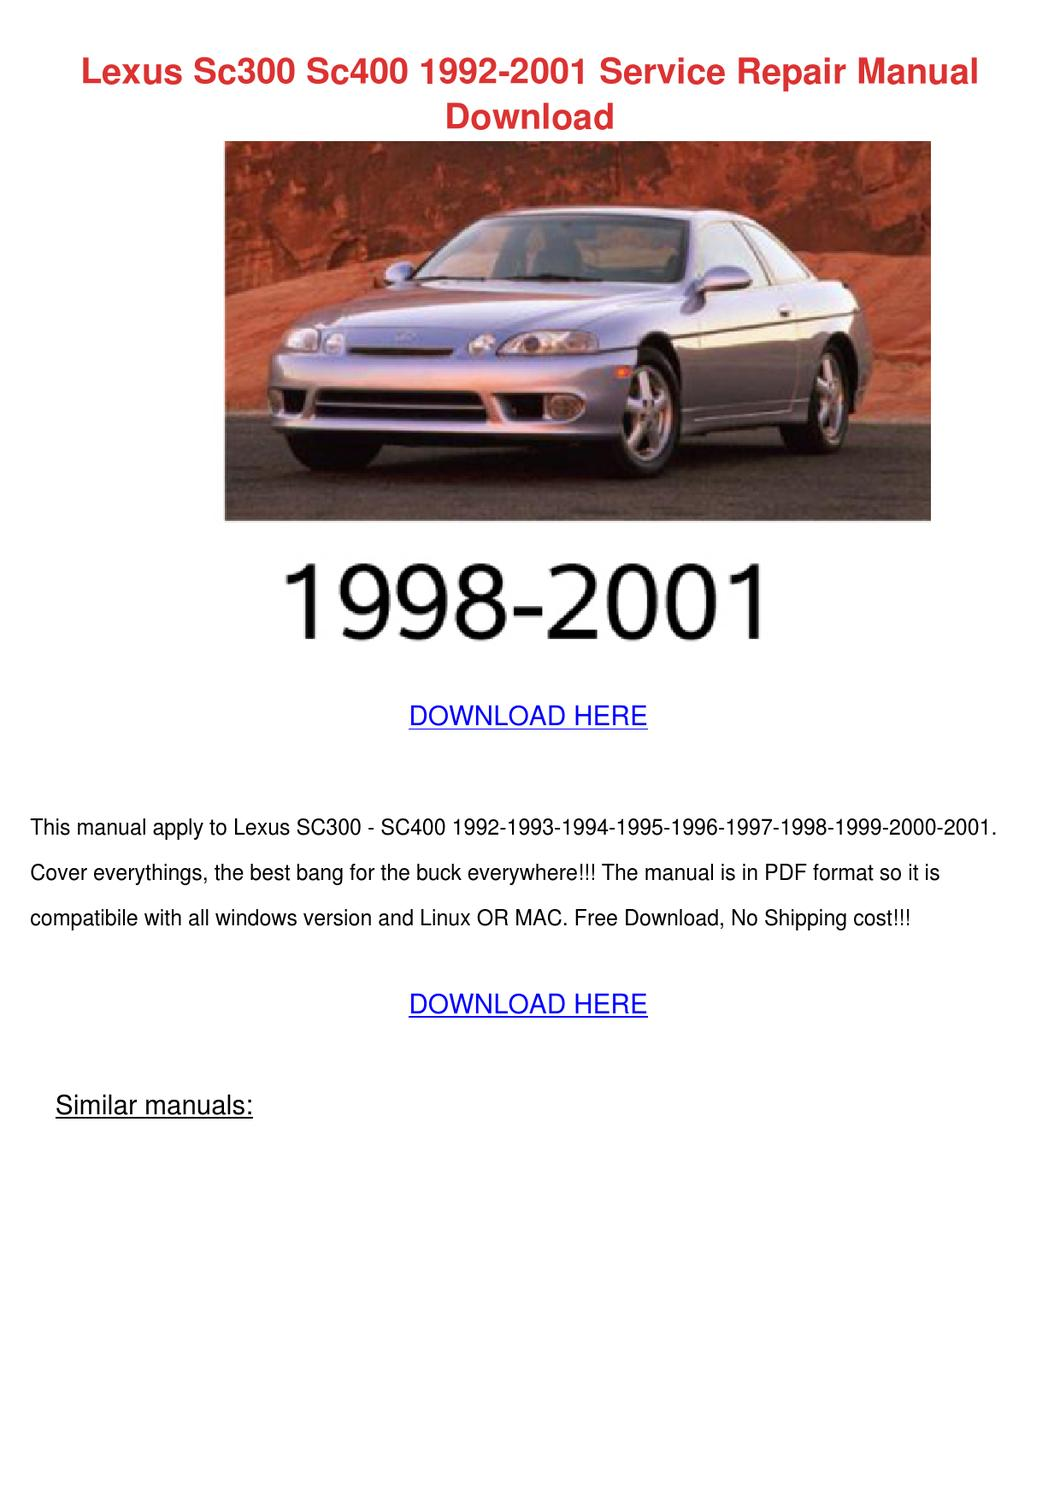 1995 Lexus Sc400 Owners Manual Pdf A Good Owner Example 1992 Problems Sc300 2001 Service Repair Ma By Herlinda Hogy Issuu Rh Com